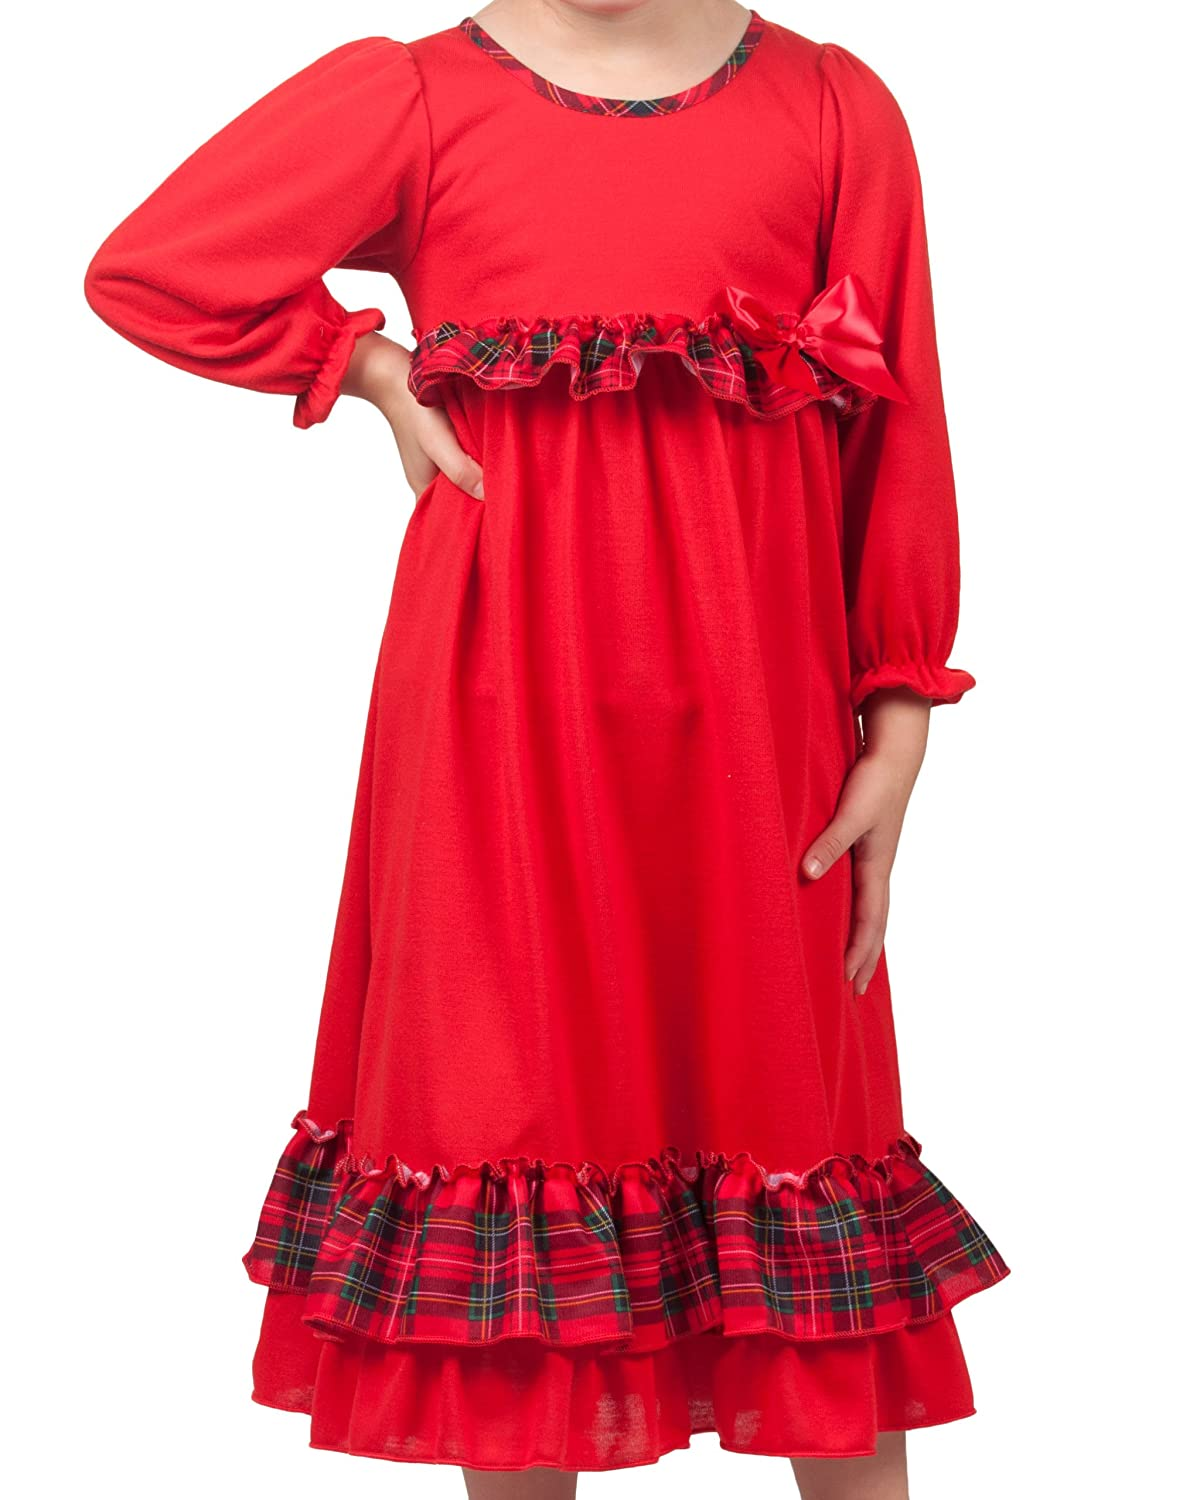 Laura Dare Baby Toddler Holiday Red Long Sleeve Gown with Red Green Plaid Trim 336538-RD